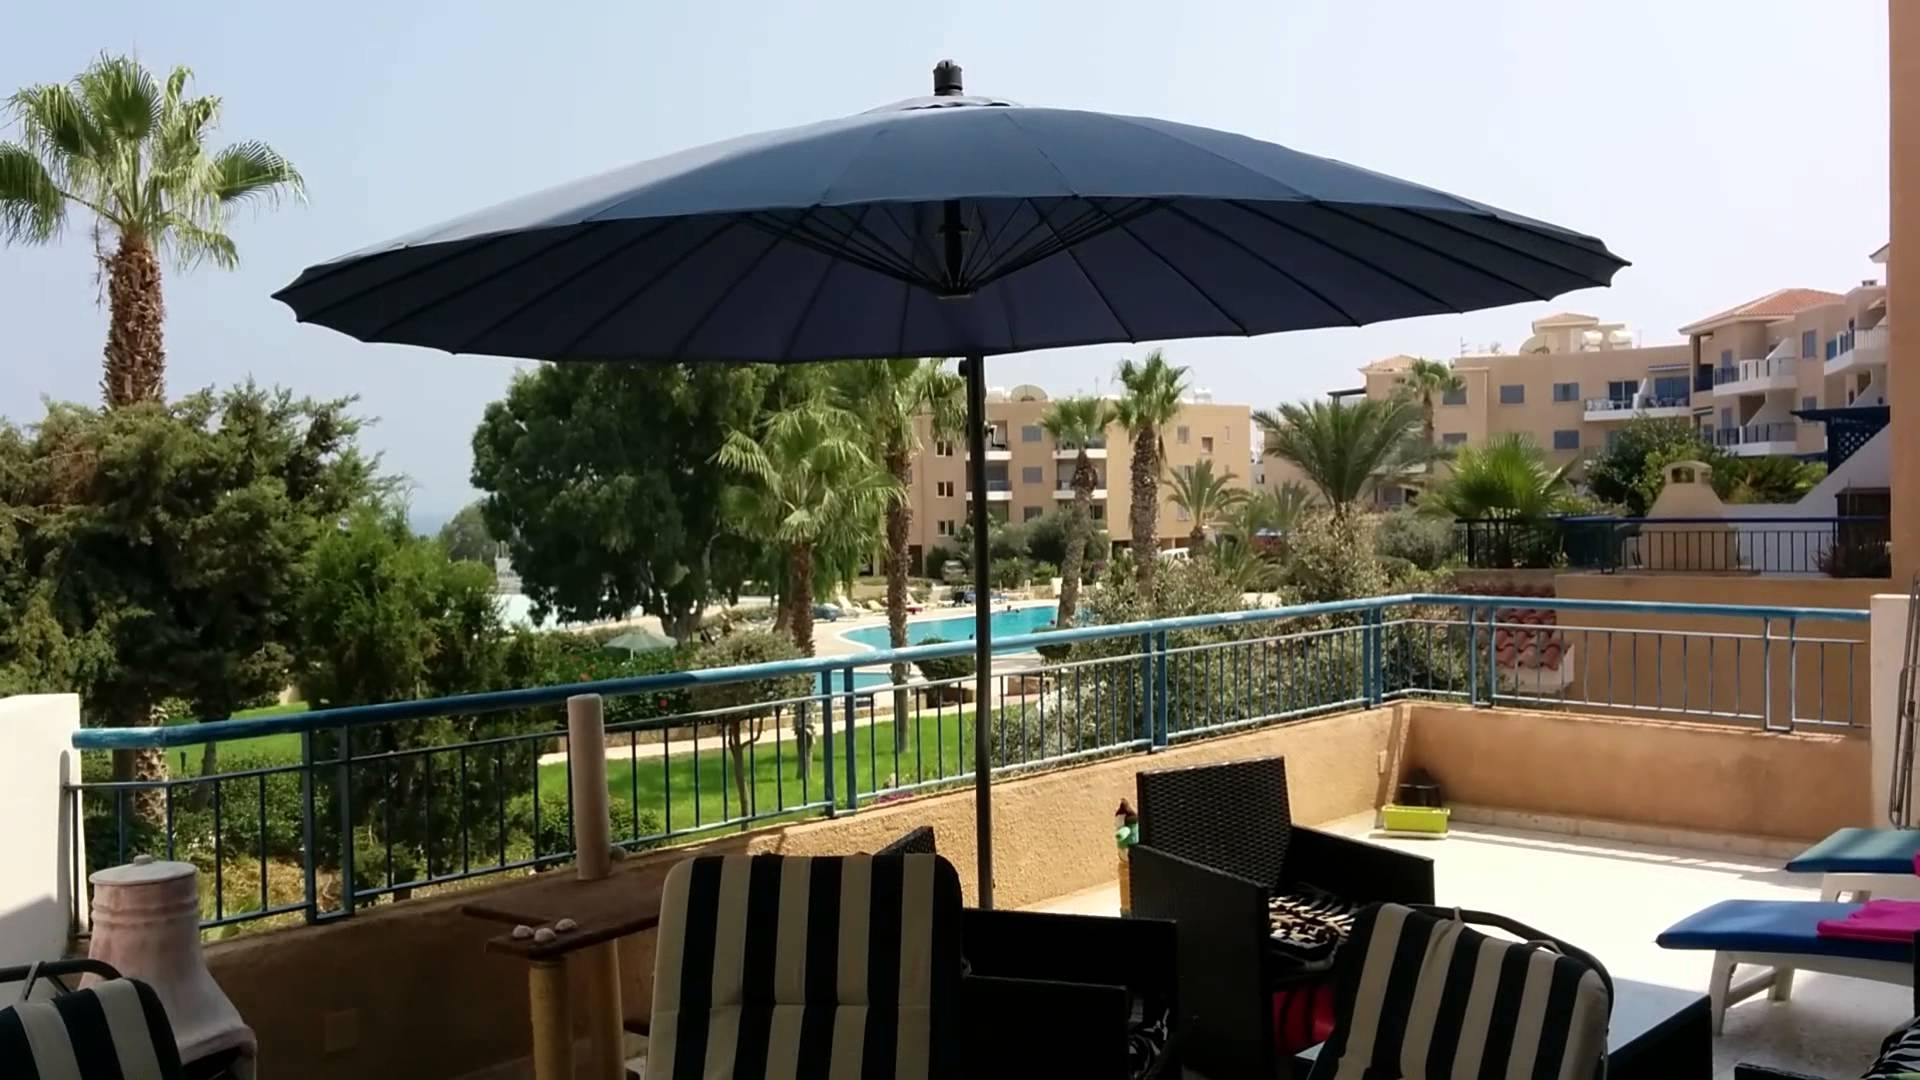 Widely Used Offset Umbrella In The Wind – Youtube Throughout Patio Umbrellas For Windy Locations (View 19 of 20)